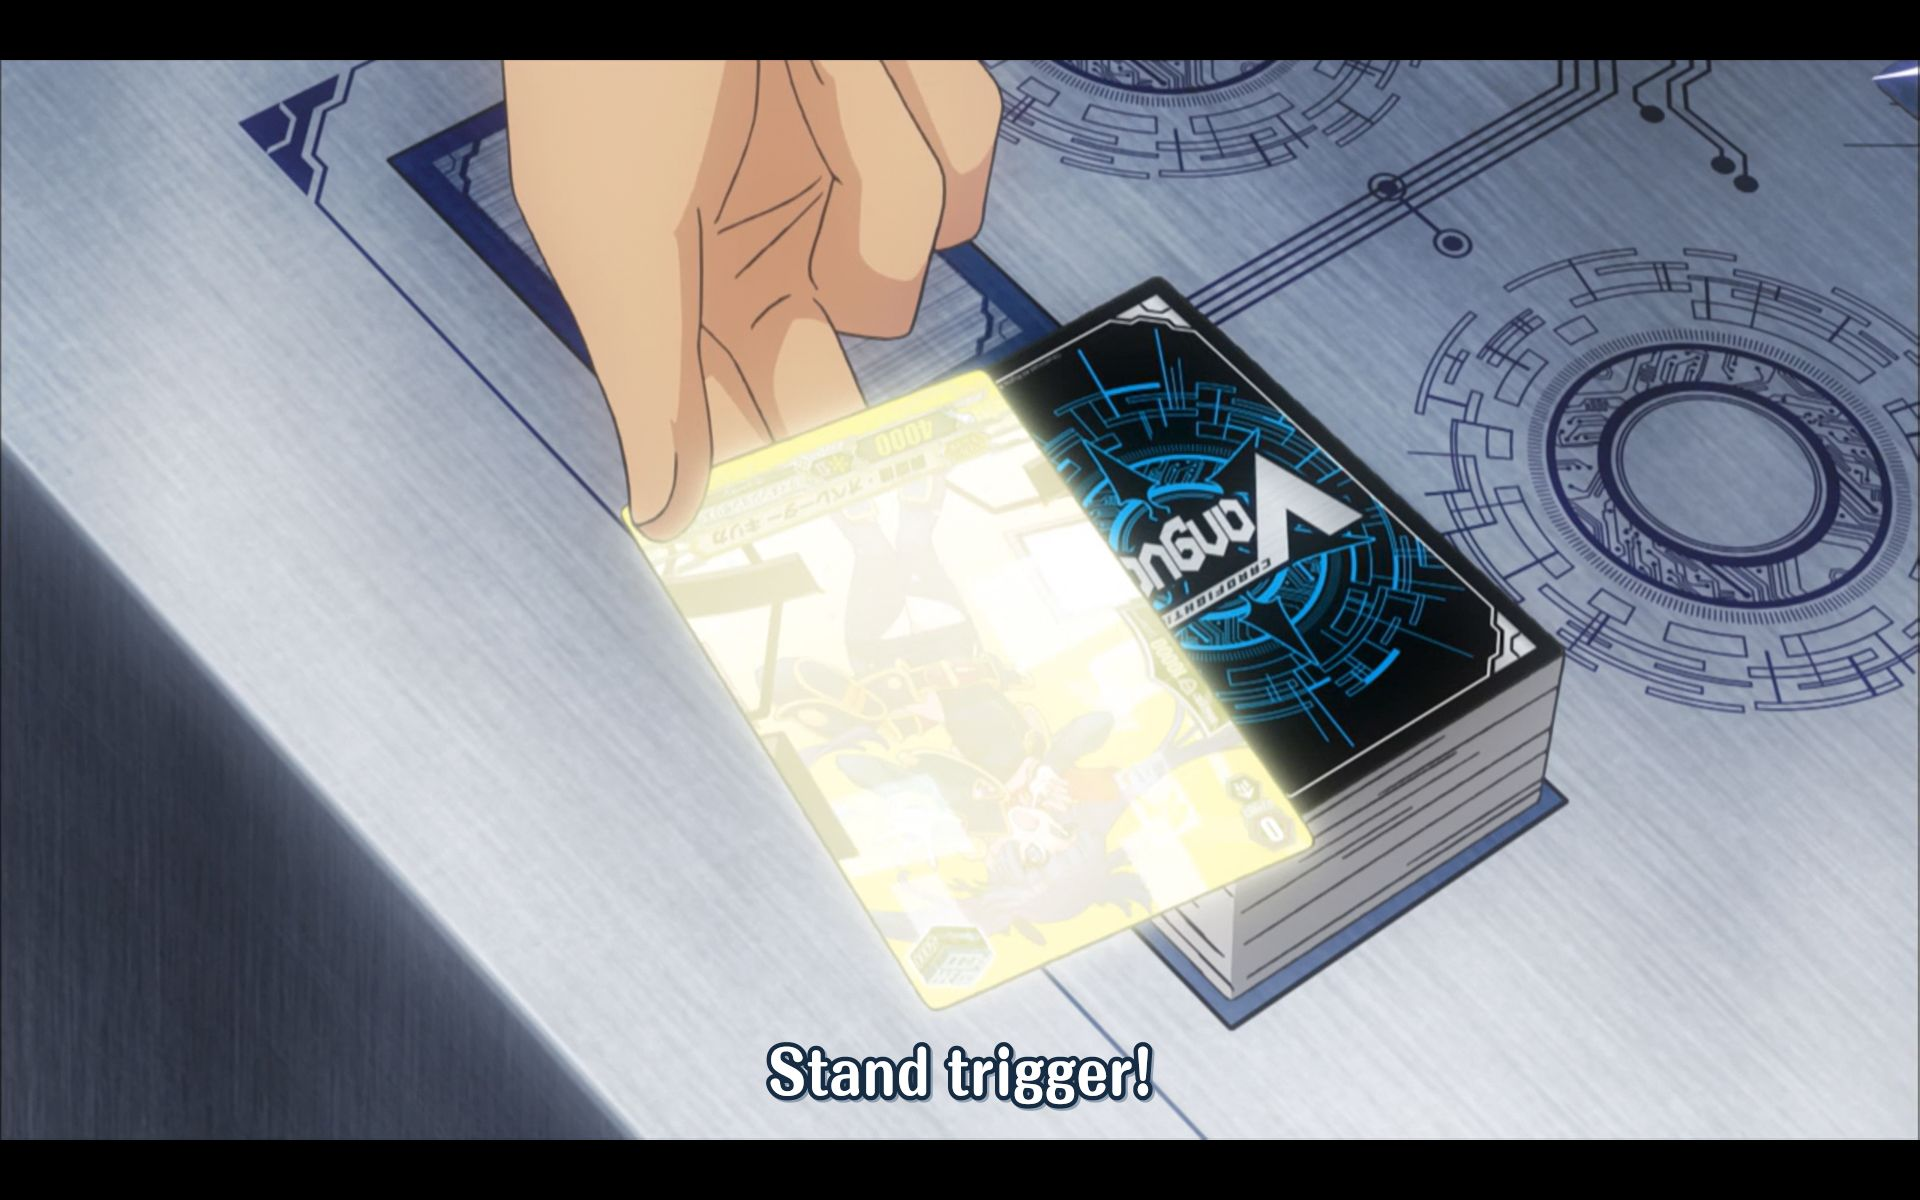 Spotted in the wild: A stand trigger card!